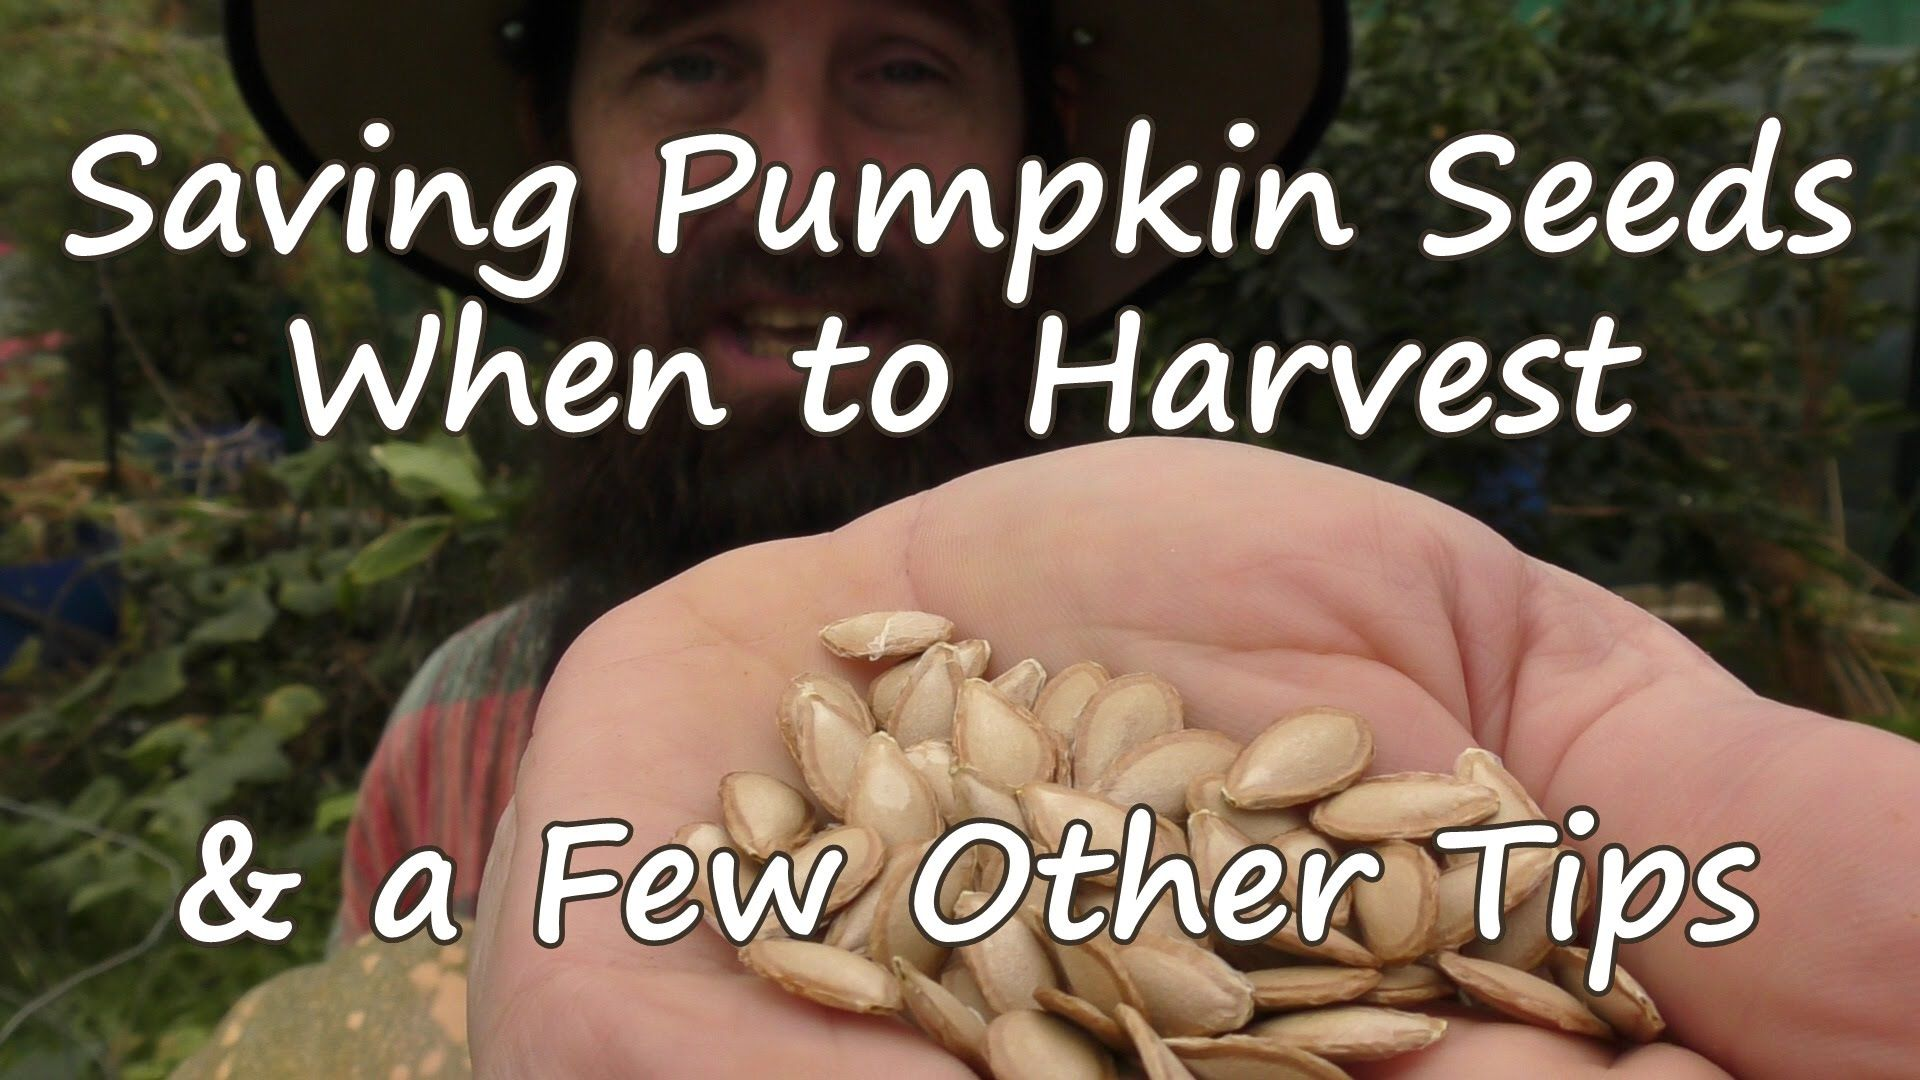 How to Save Pumpkin Seeds, When to Harvest & a Few Other Tips.